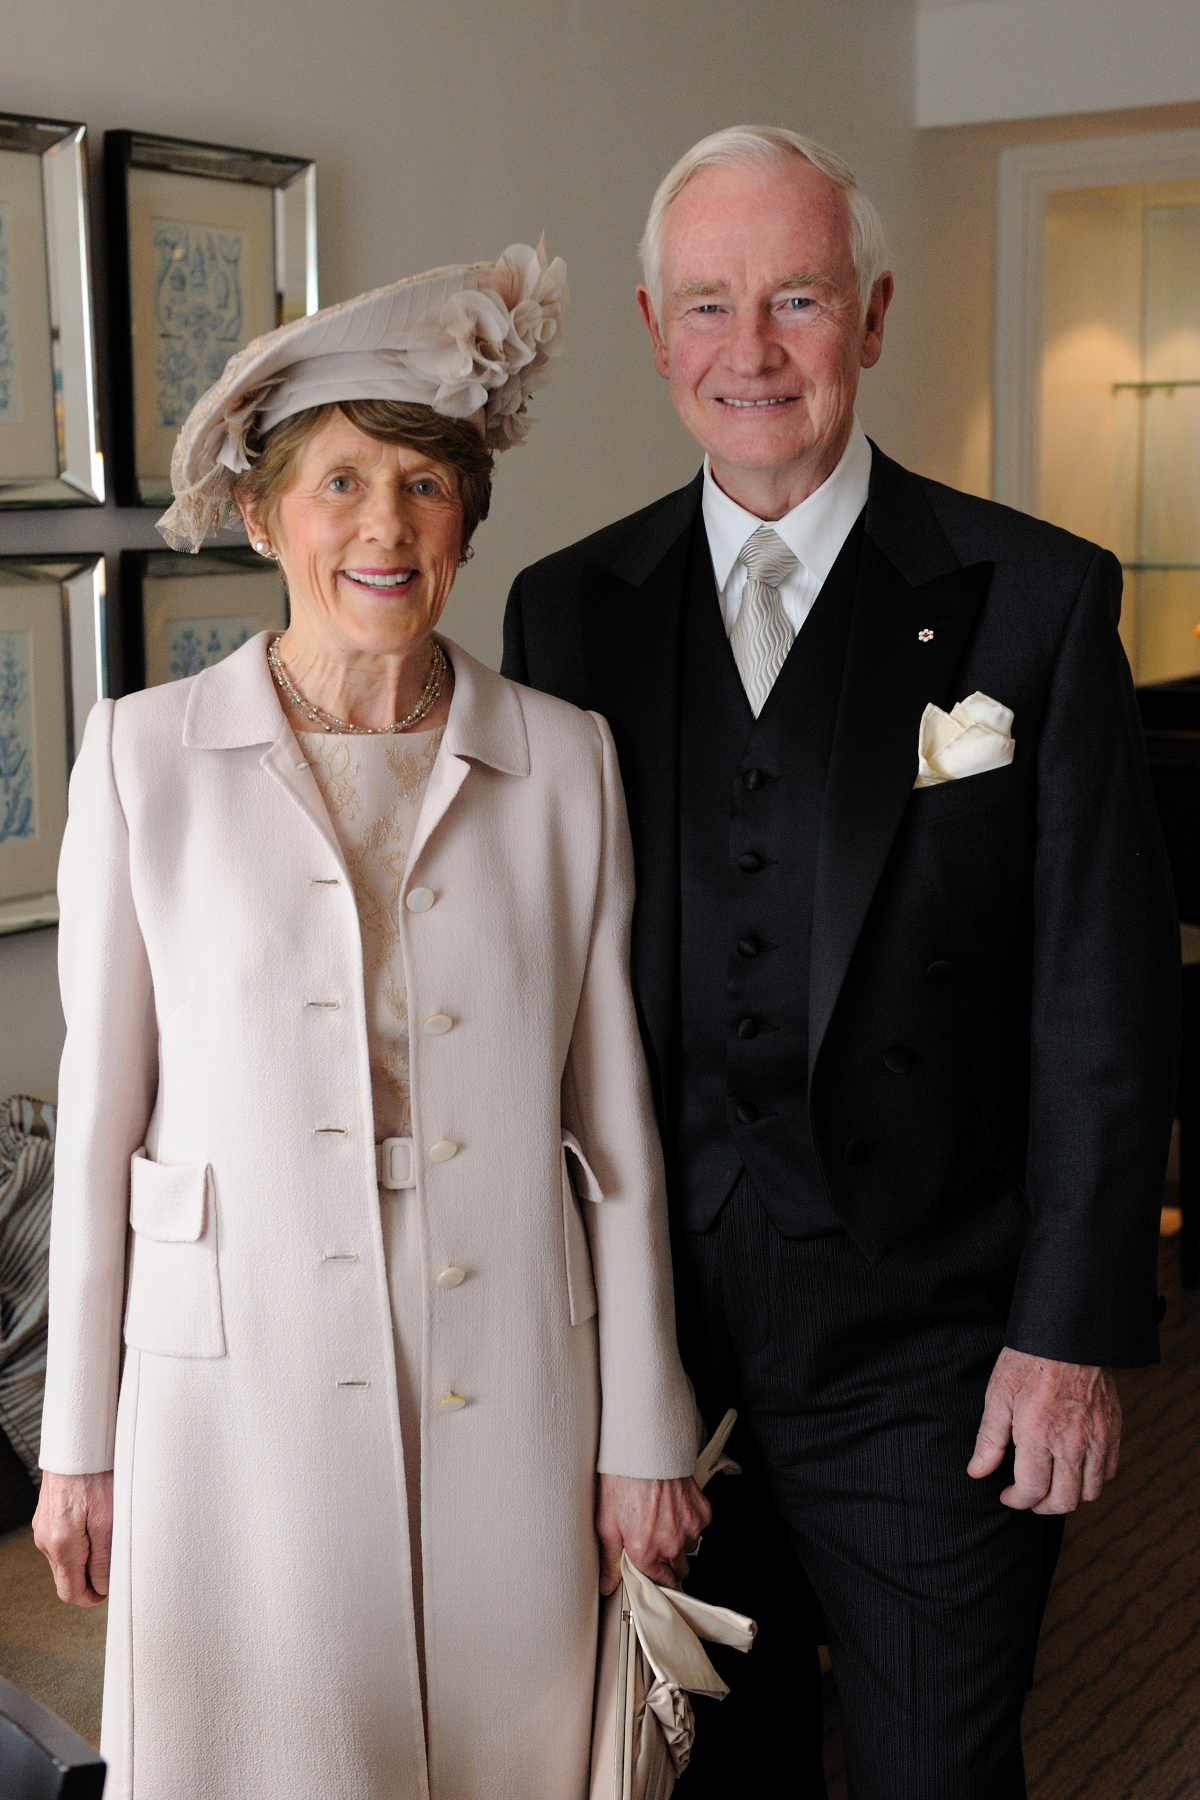 The Governor General wore a grey morning coat by Coppley.